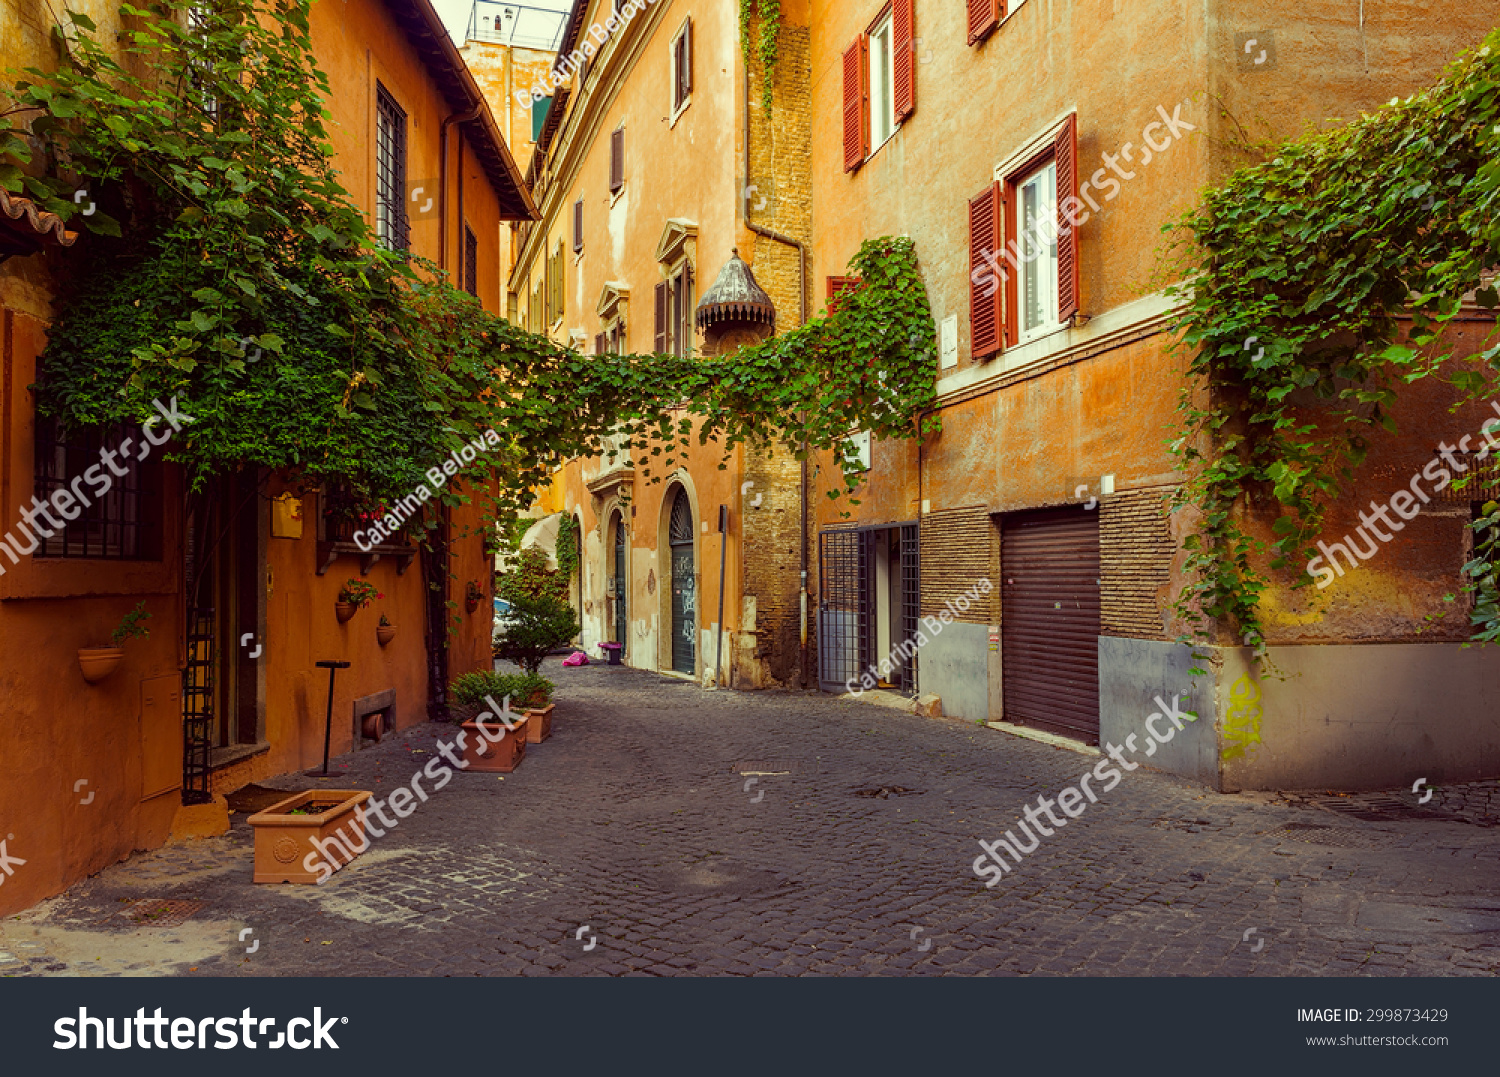 Old street in Trastevere in Rome Italy